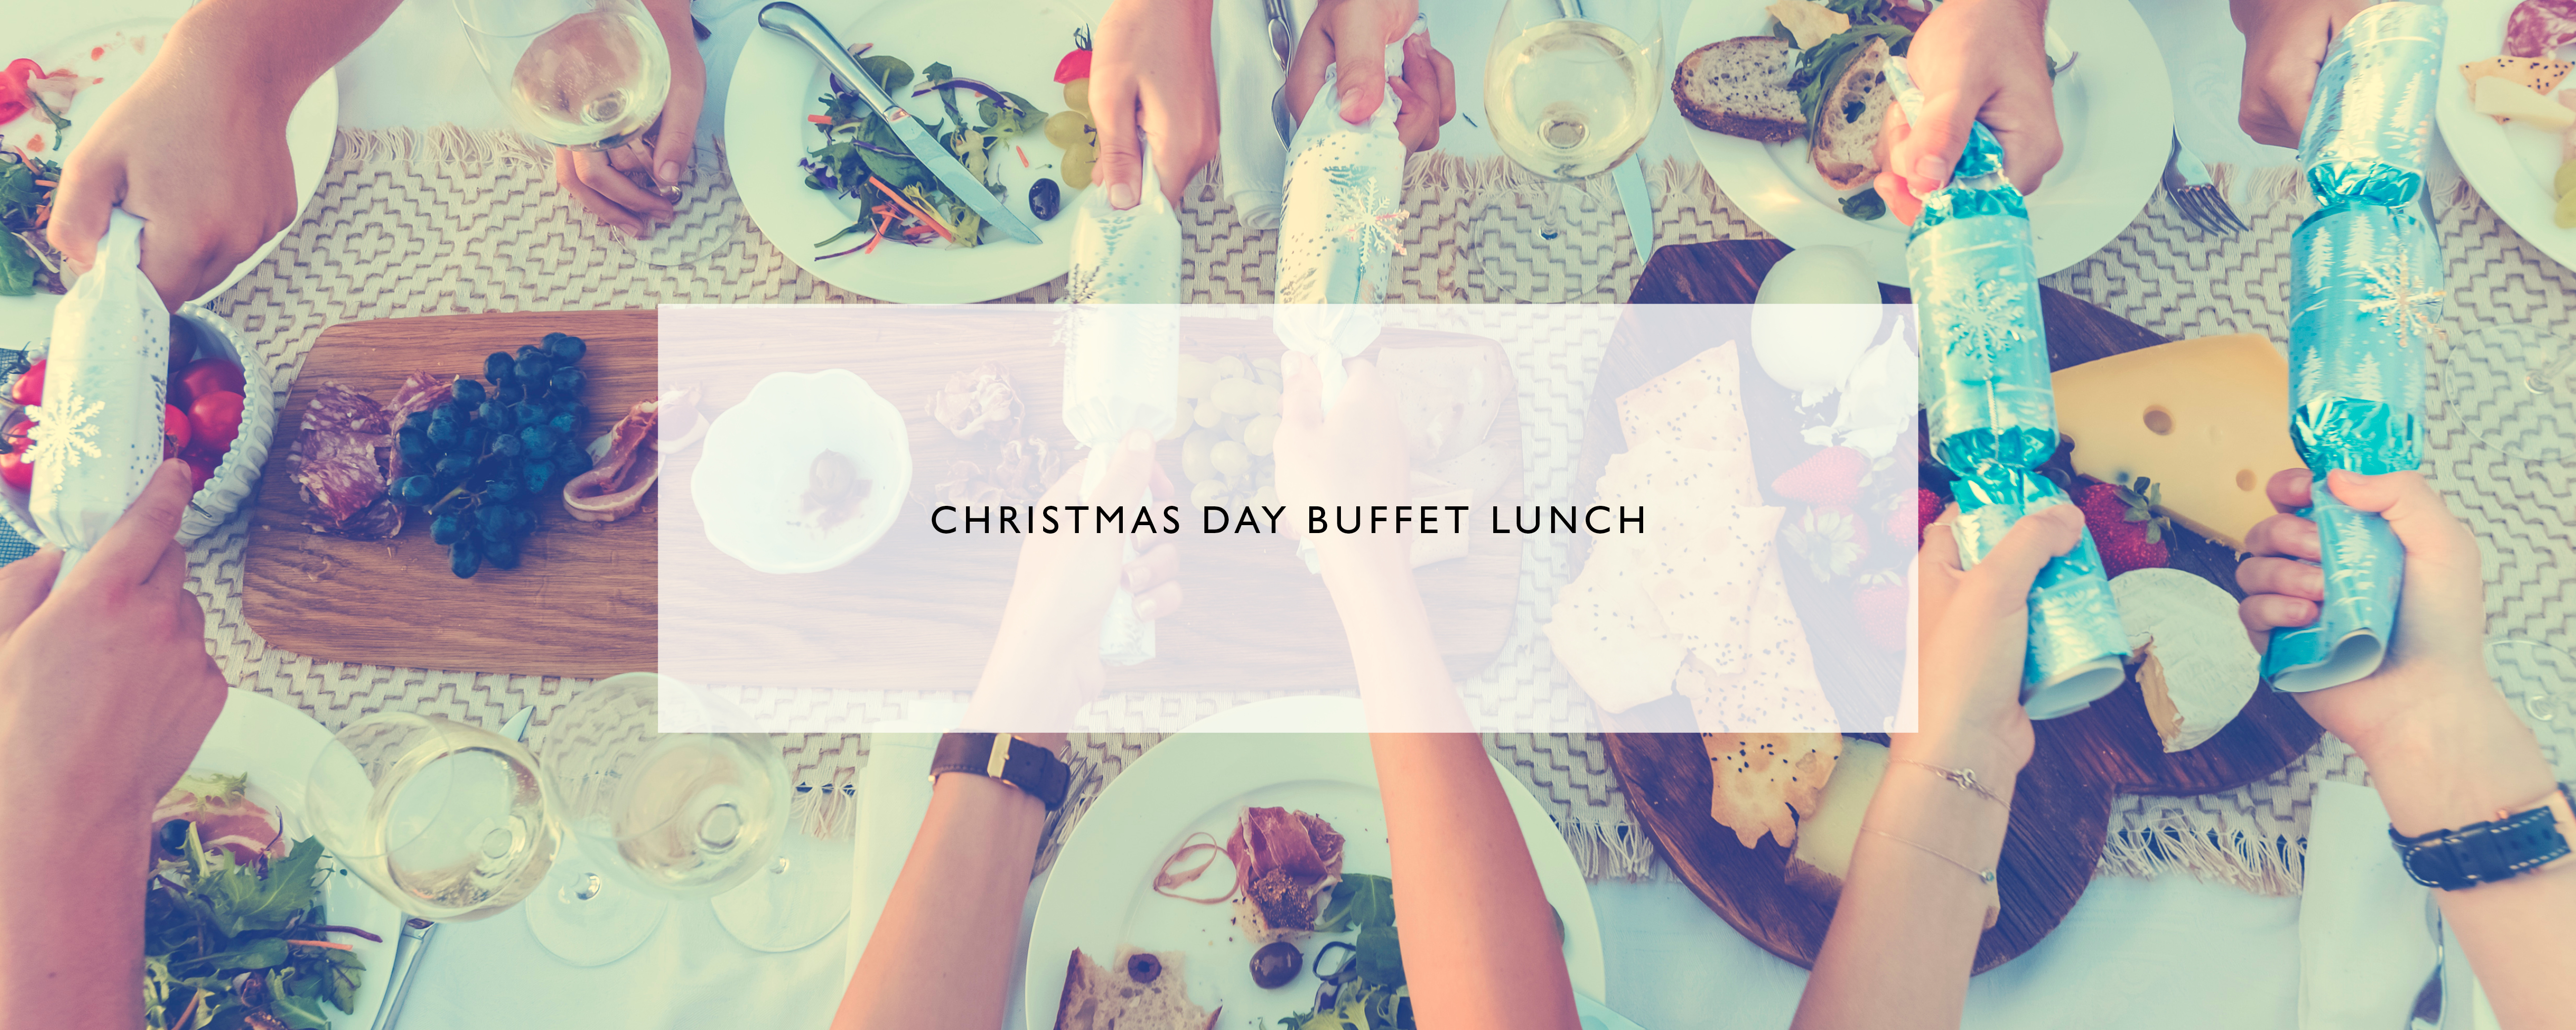 Christmas eve casual buffet ideas - Hotel Realm Barton Canberra Christmas Day Lunch Canberra 2016 Christmas